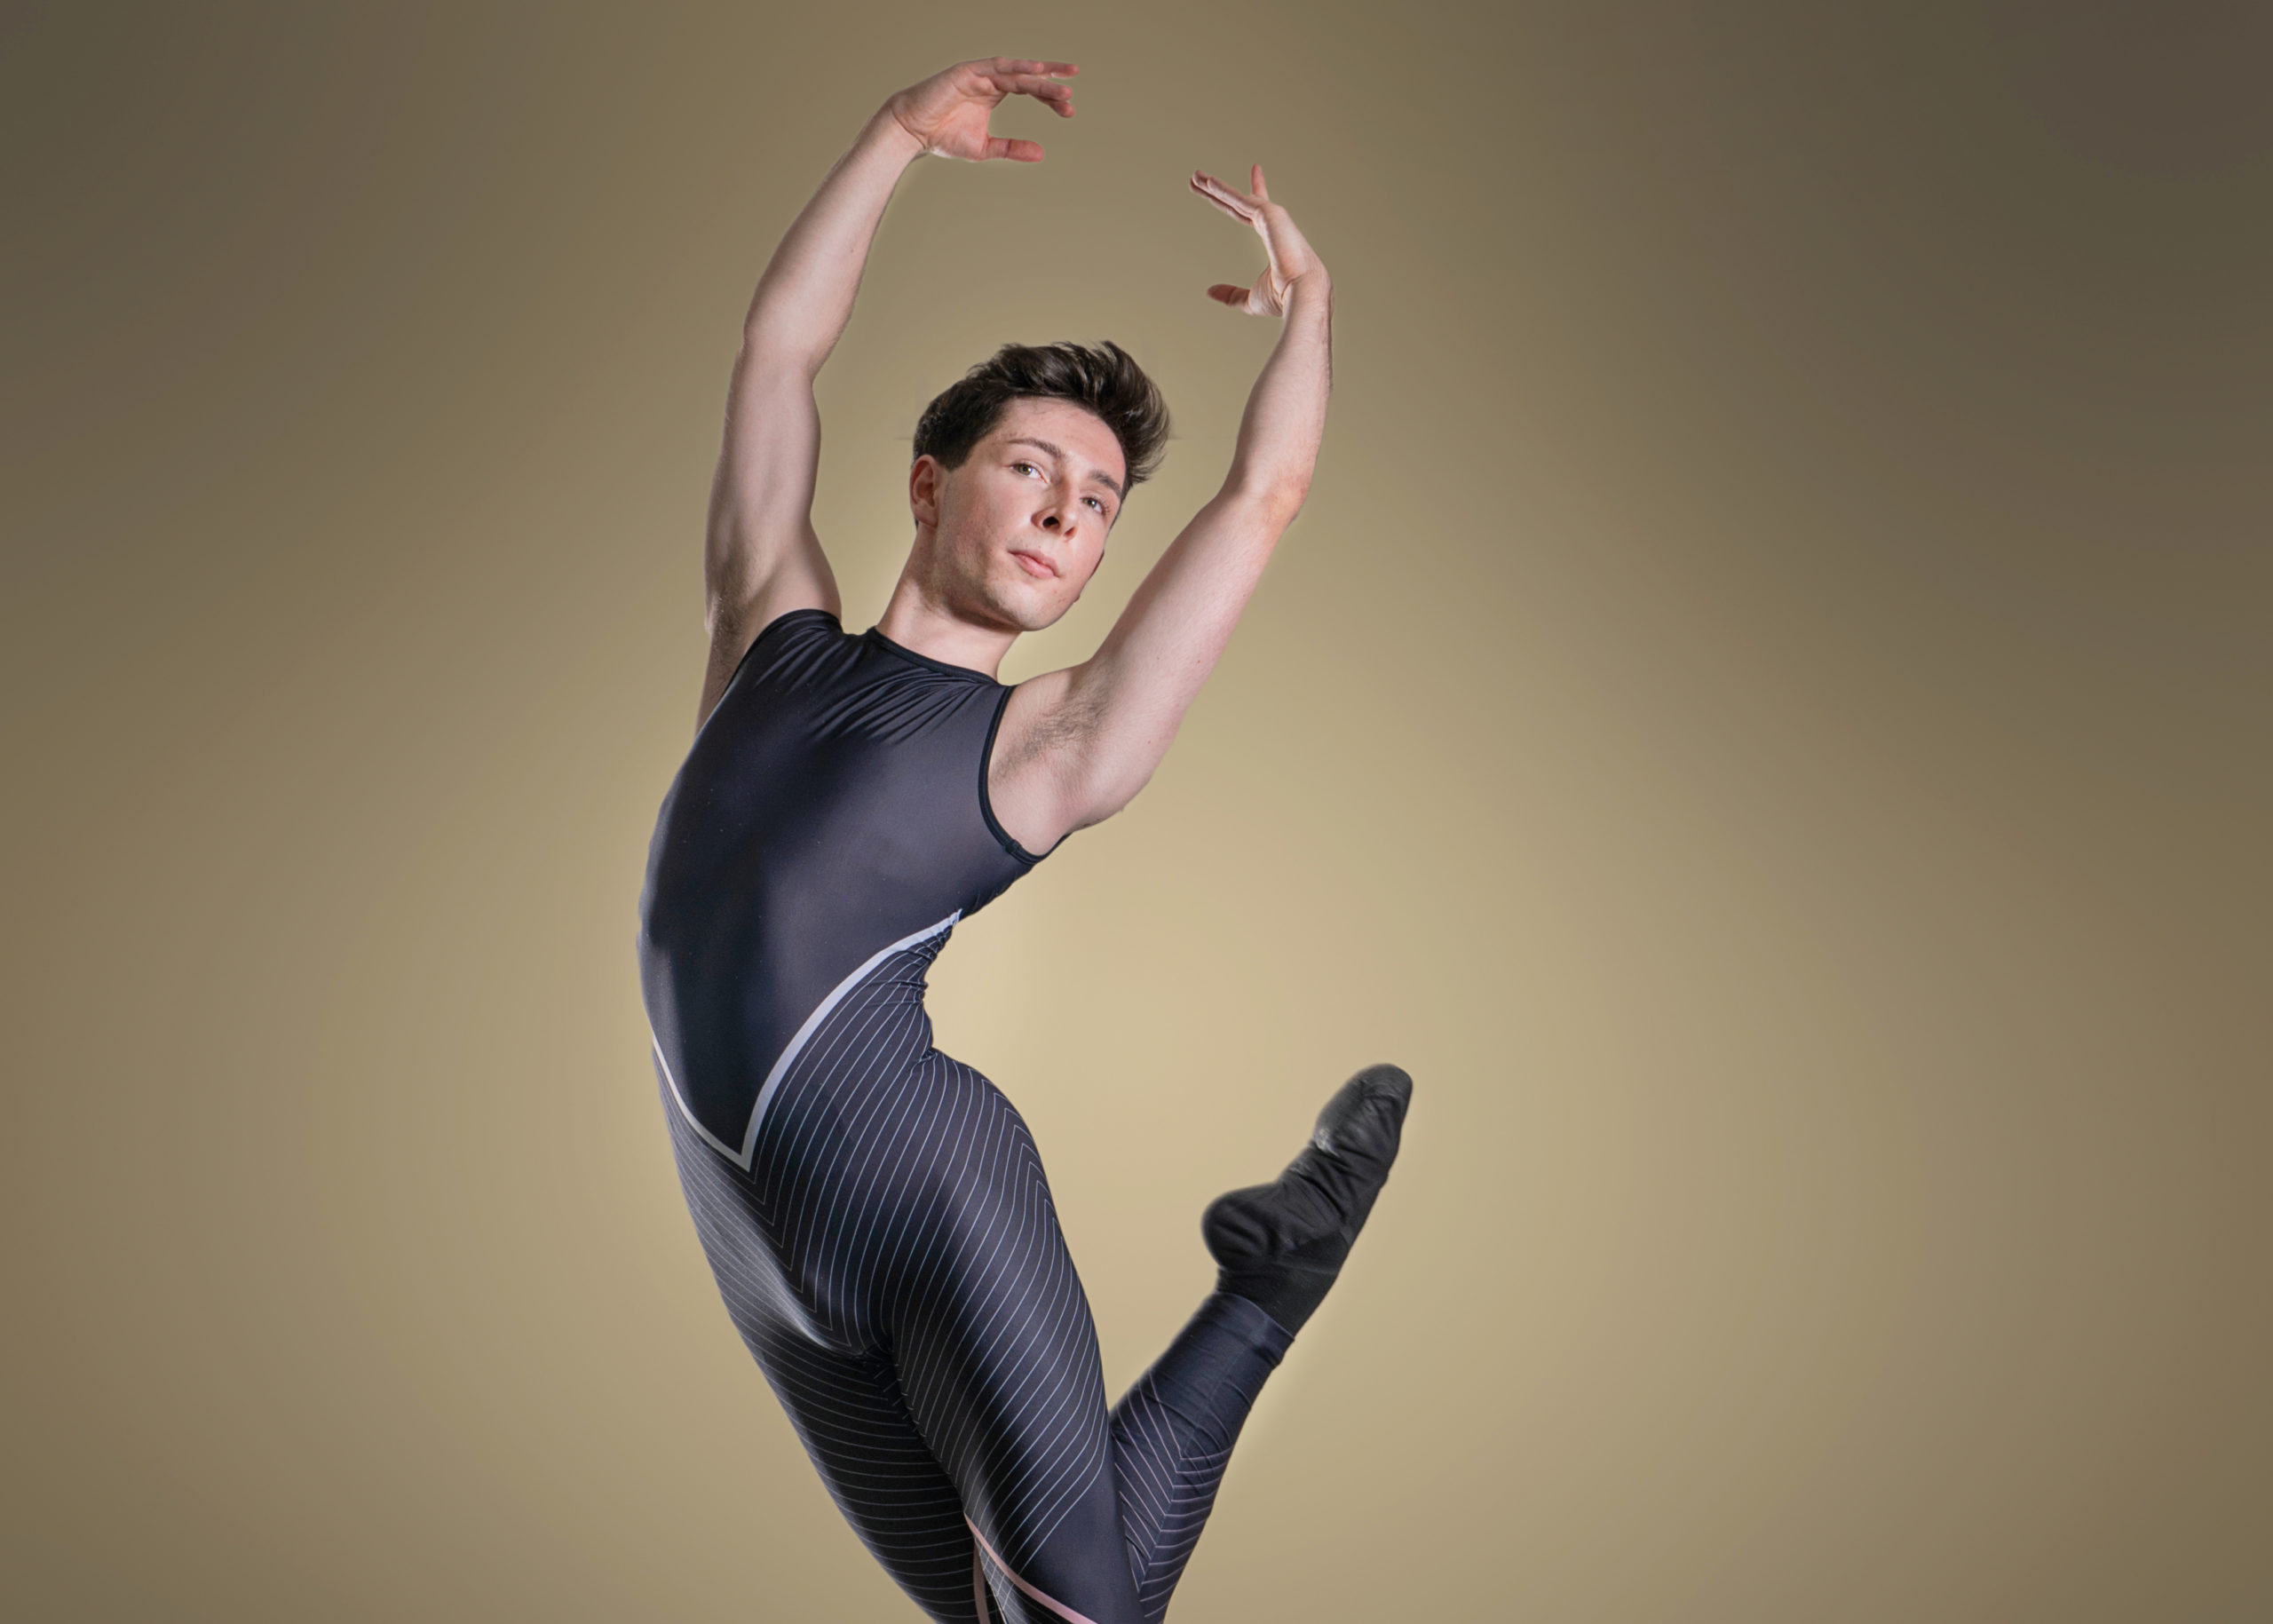 Wearing a dark, patterned unitard, Ballet Jörgen dancer Callum McGregor jumps into the air with his right leg tucked behind him and his arms in fifth position.